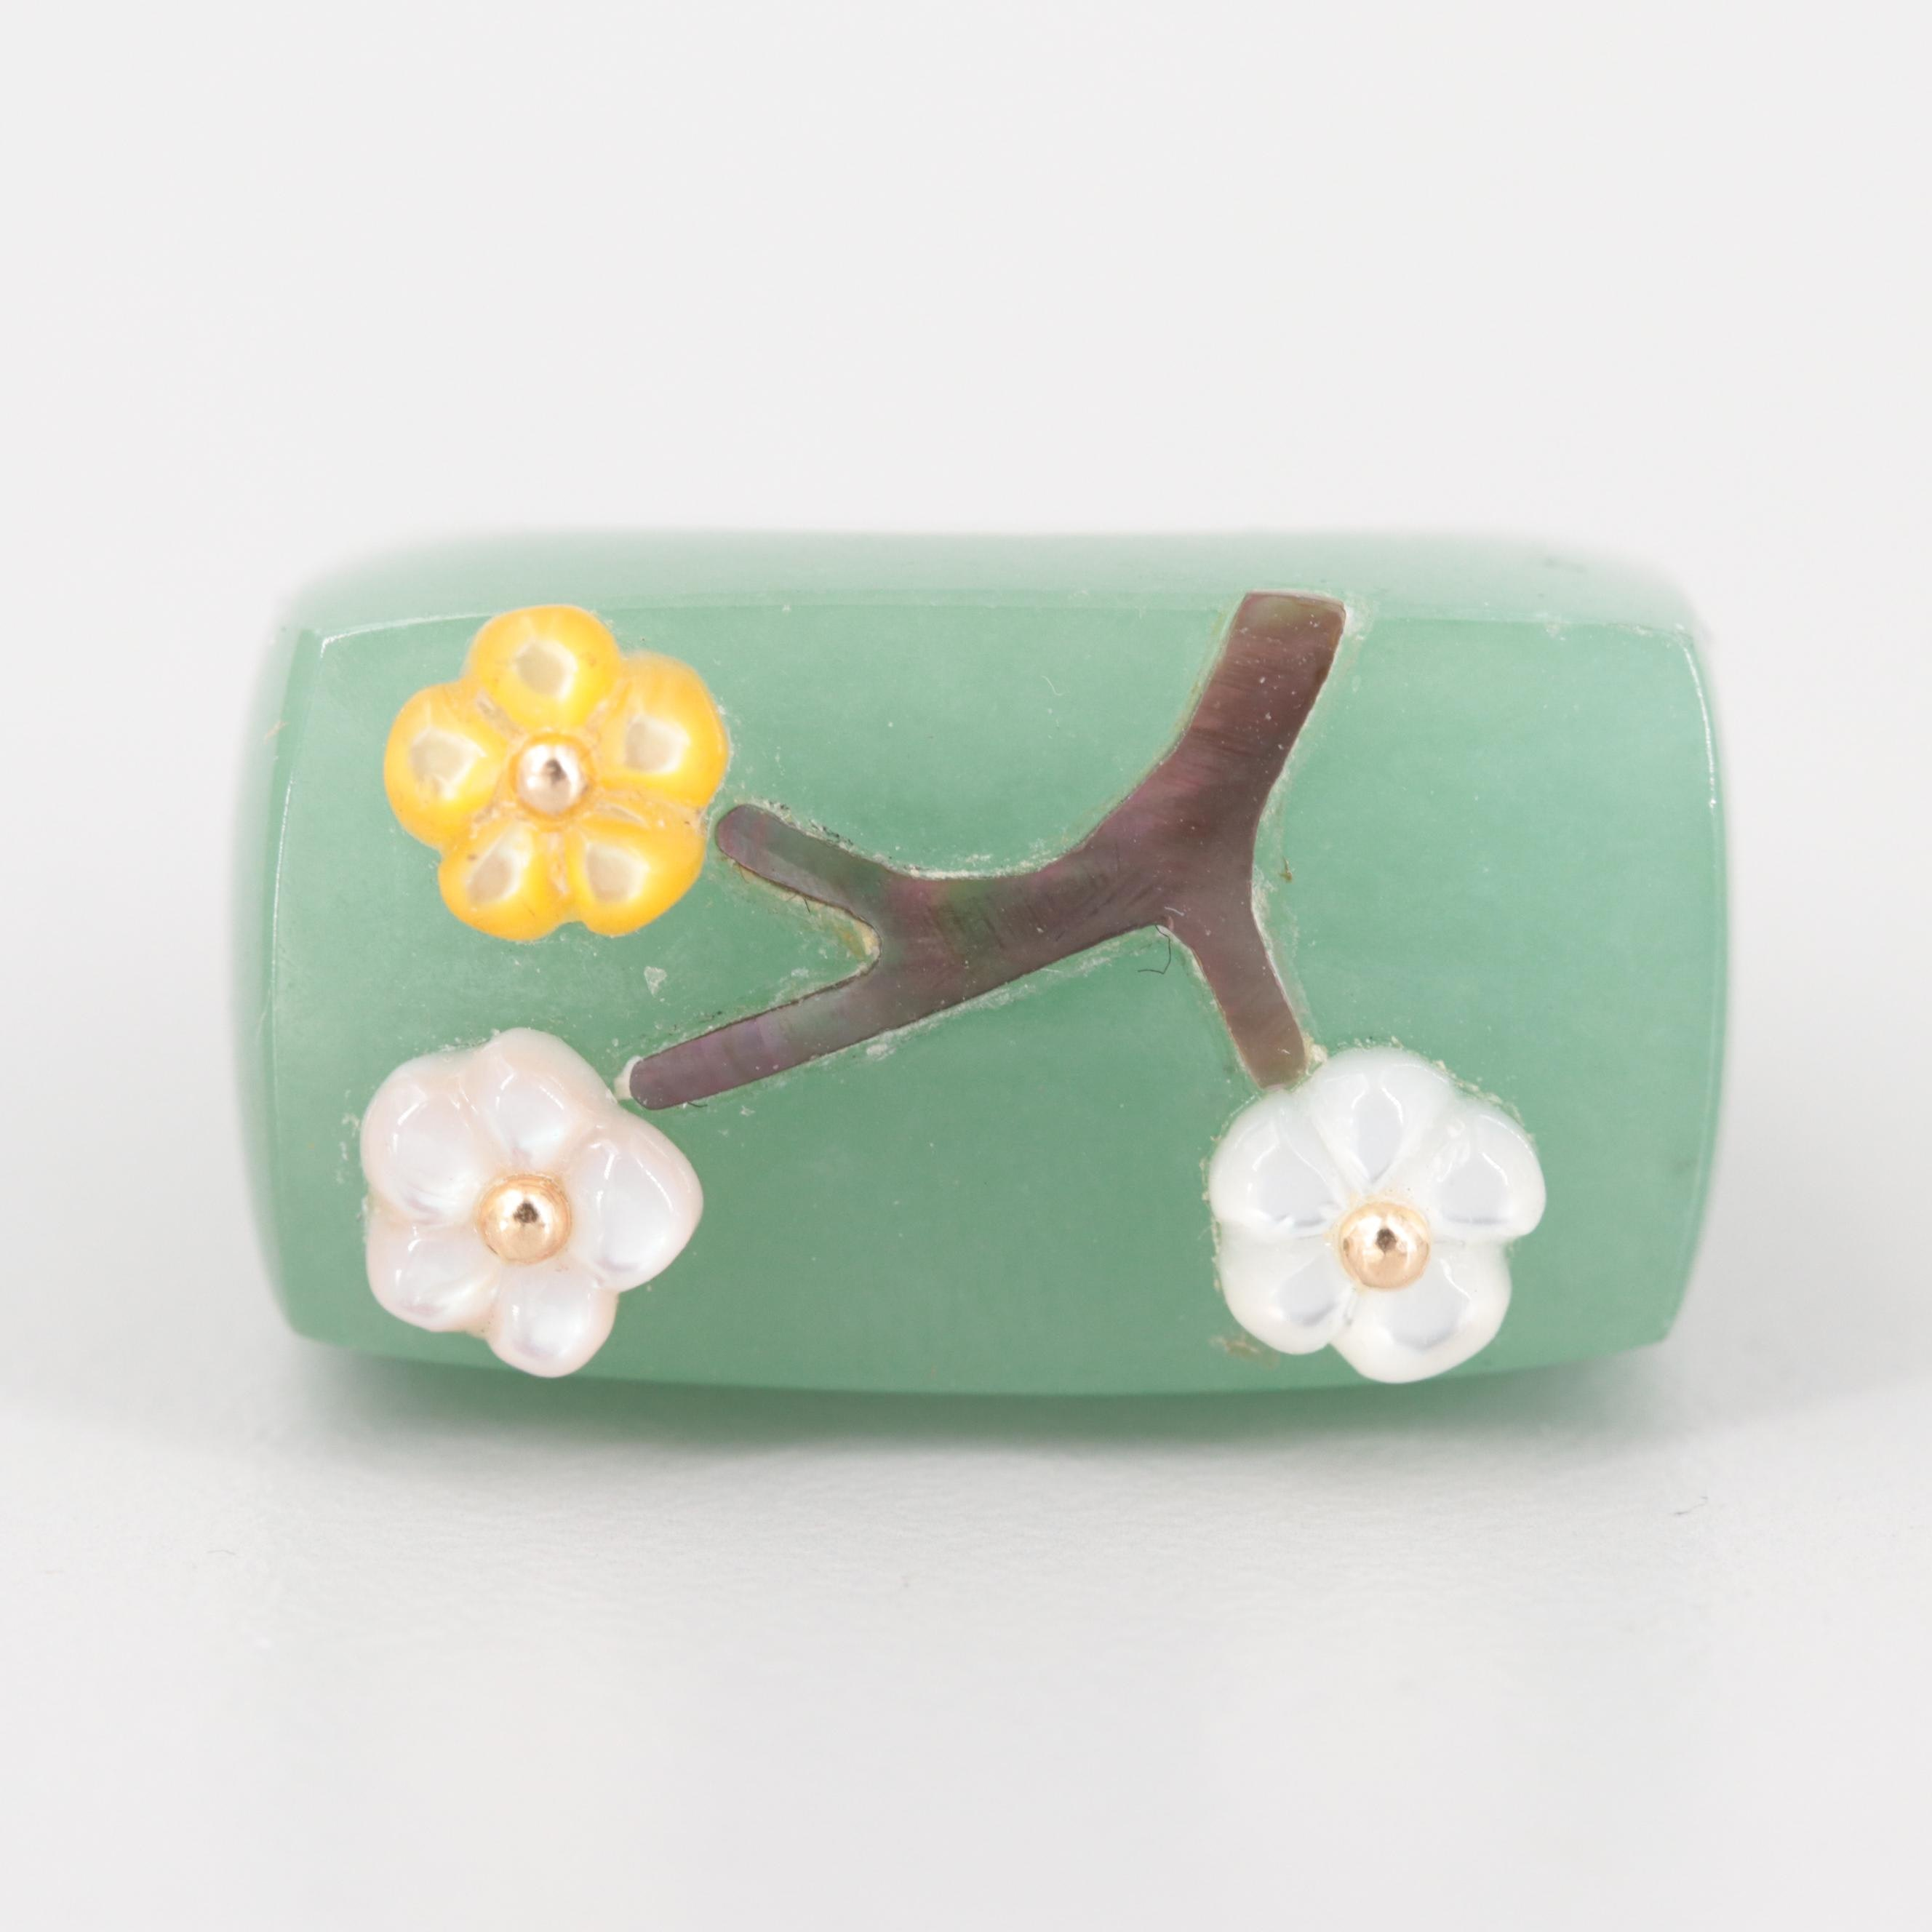 14K Yellow Gold Jadeite and Mother of Pearl Floral Ring